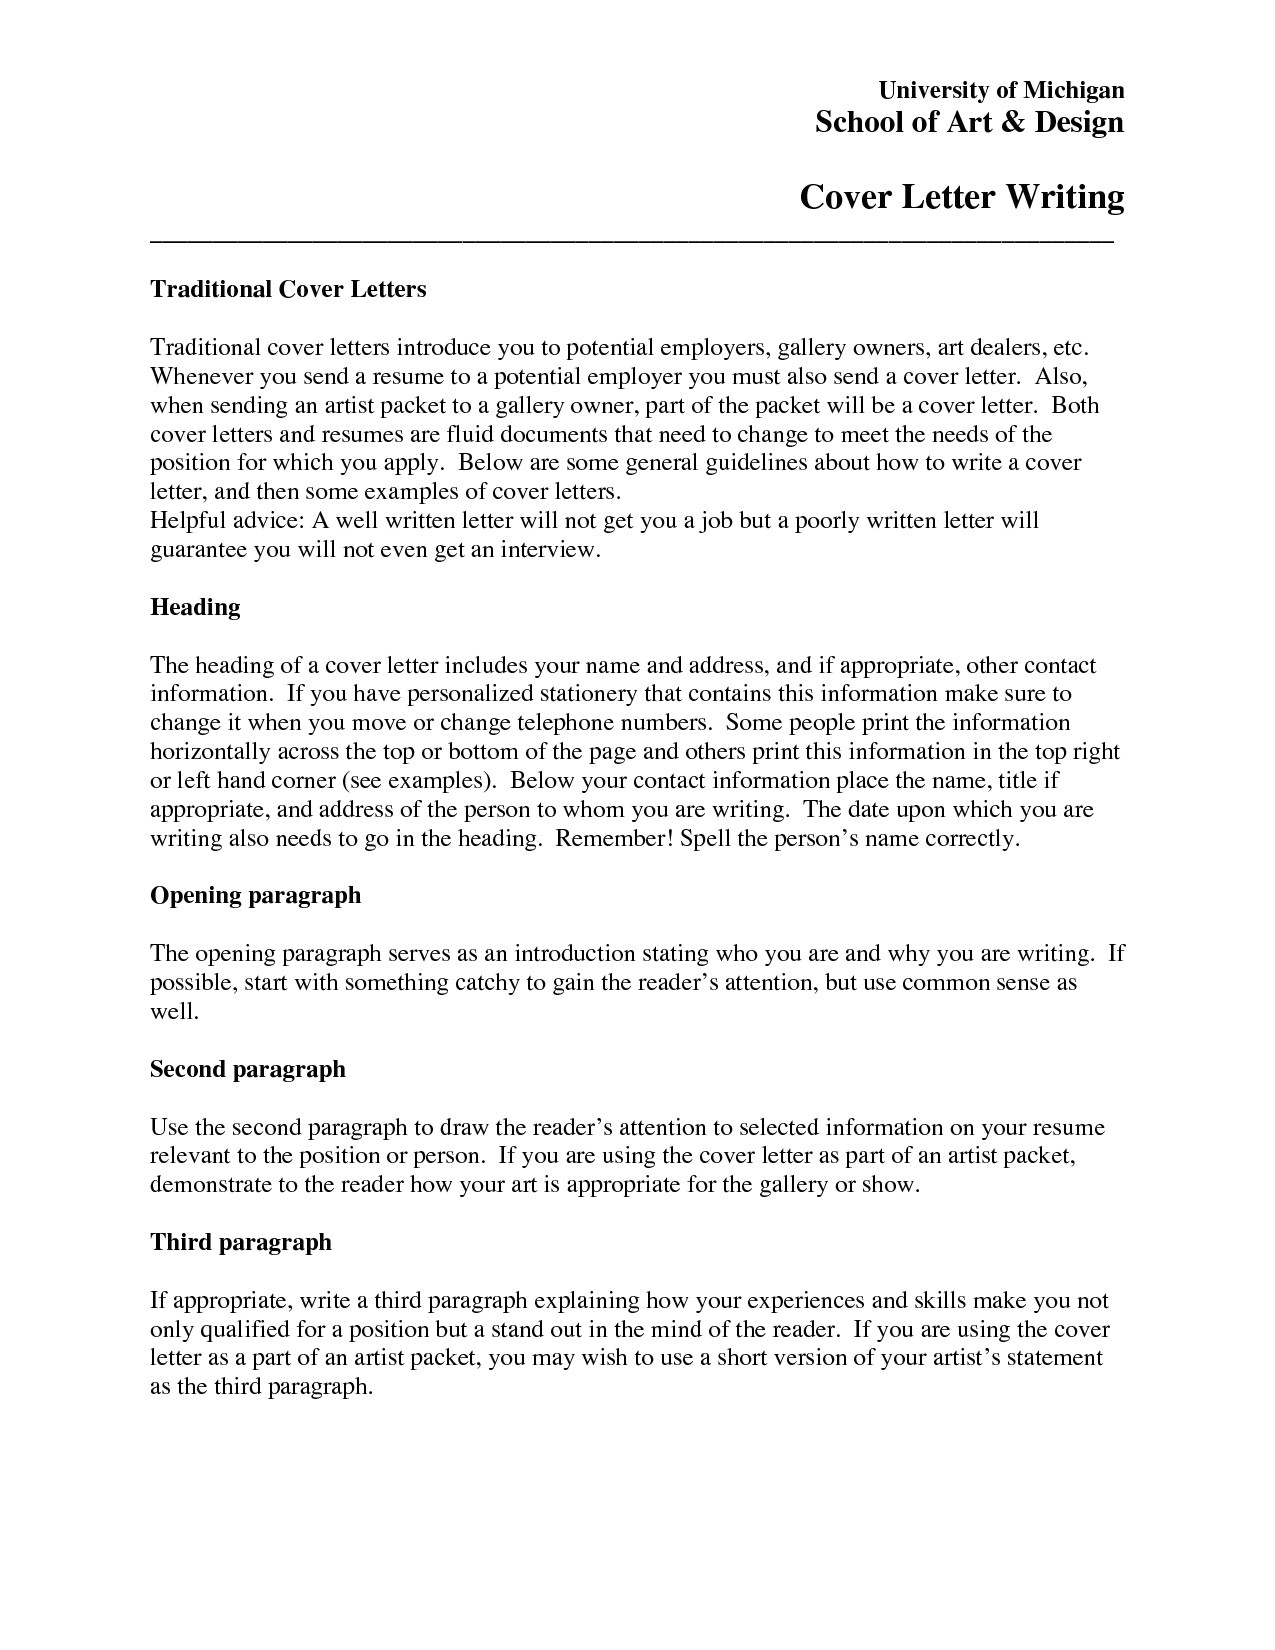 Artist Cover Letter to Gallery Sample Cover Letter for Art Gallery the Letter Sample